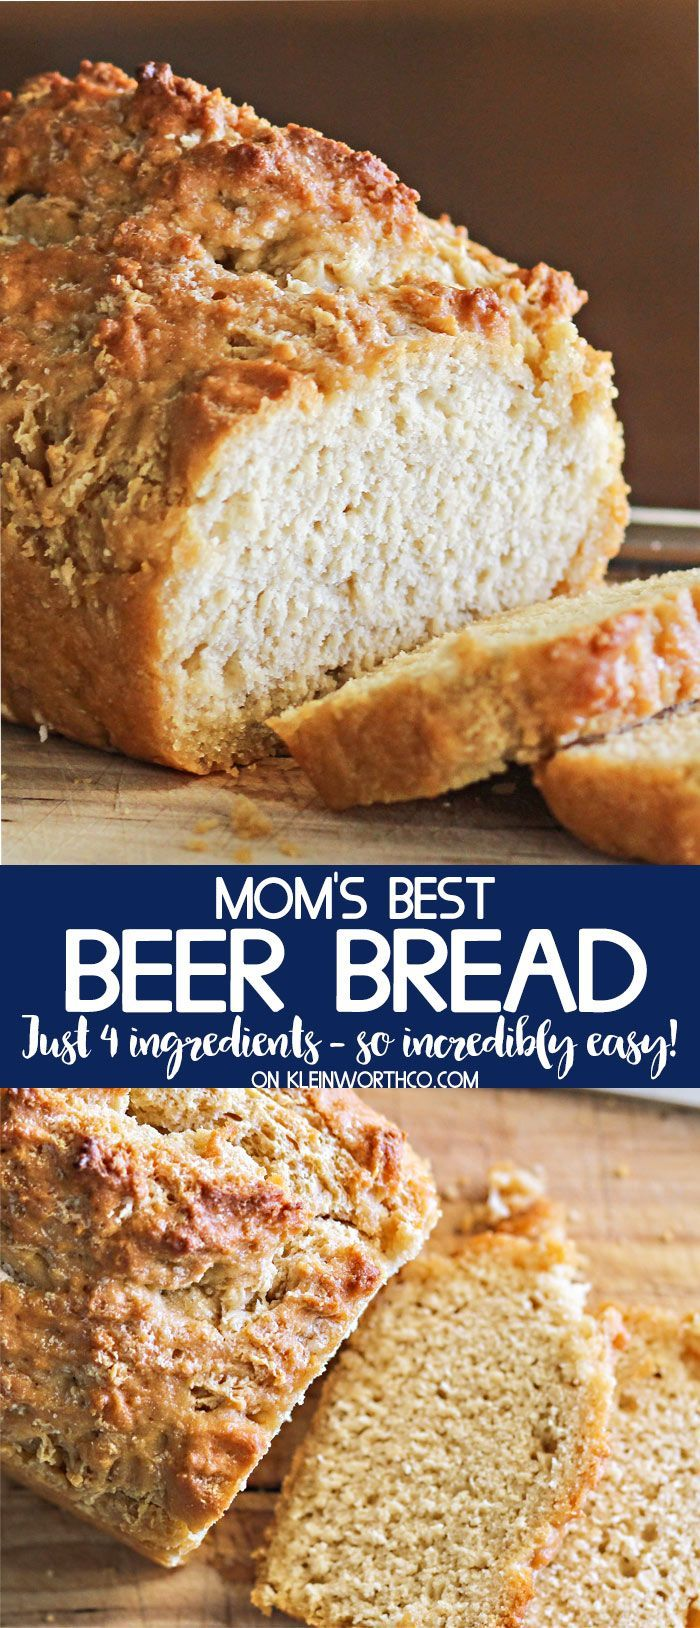 Moms Best Beer Bread recipe is one of the easiest bread recipes around. With just 4 ingredients, no rise time & just 1 hour, it's perfect with every meal. via @KleinworthCo